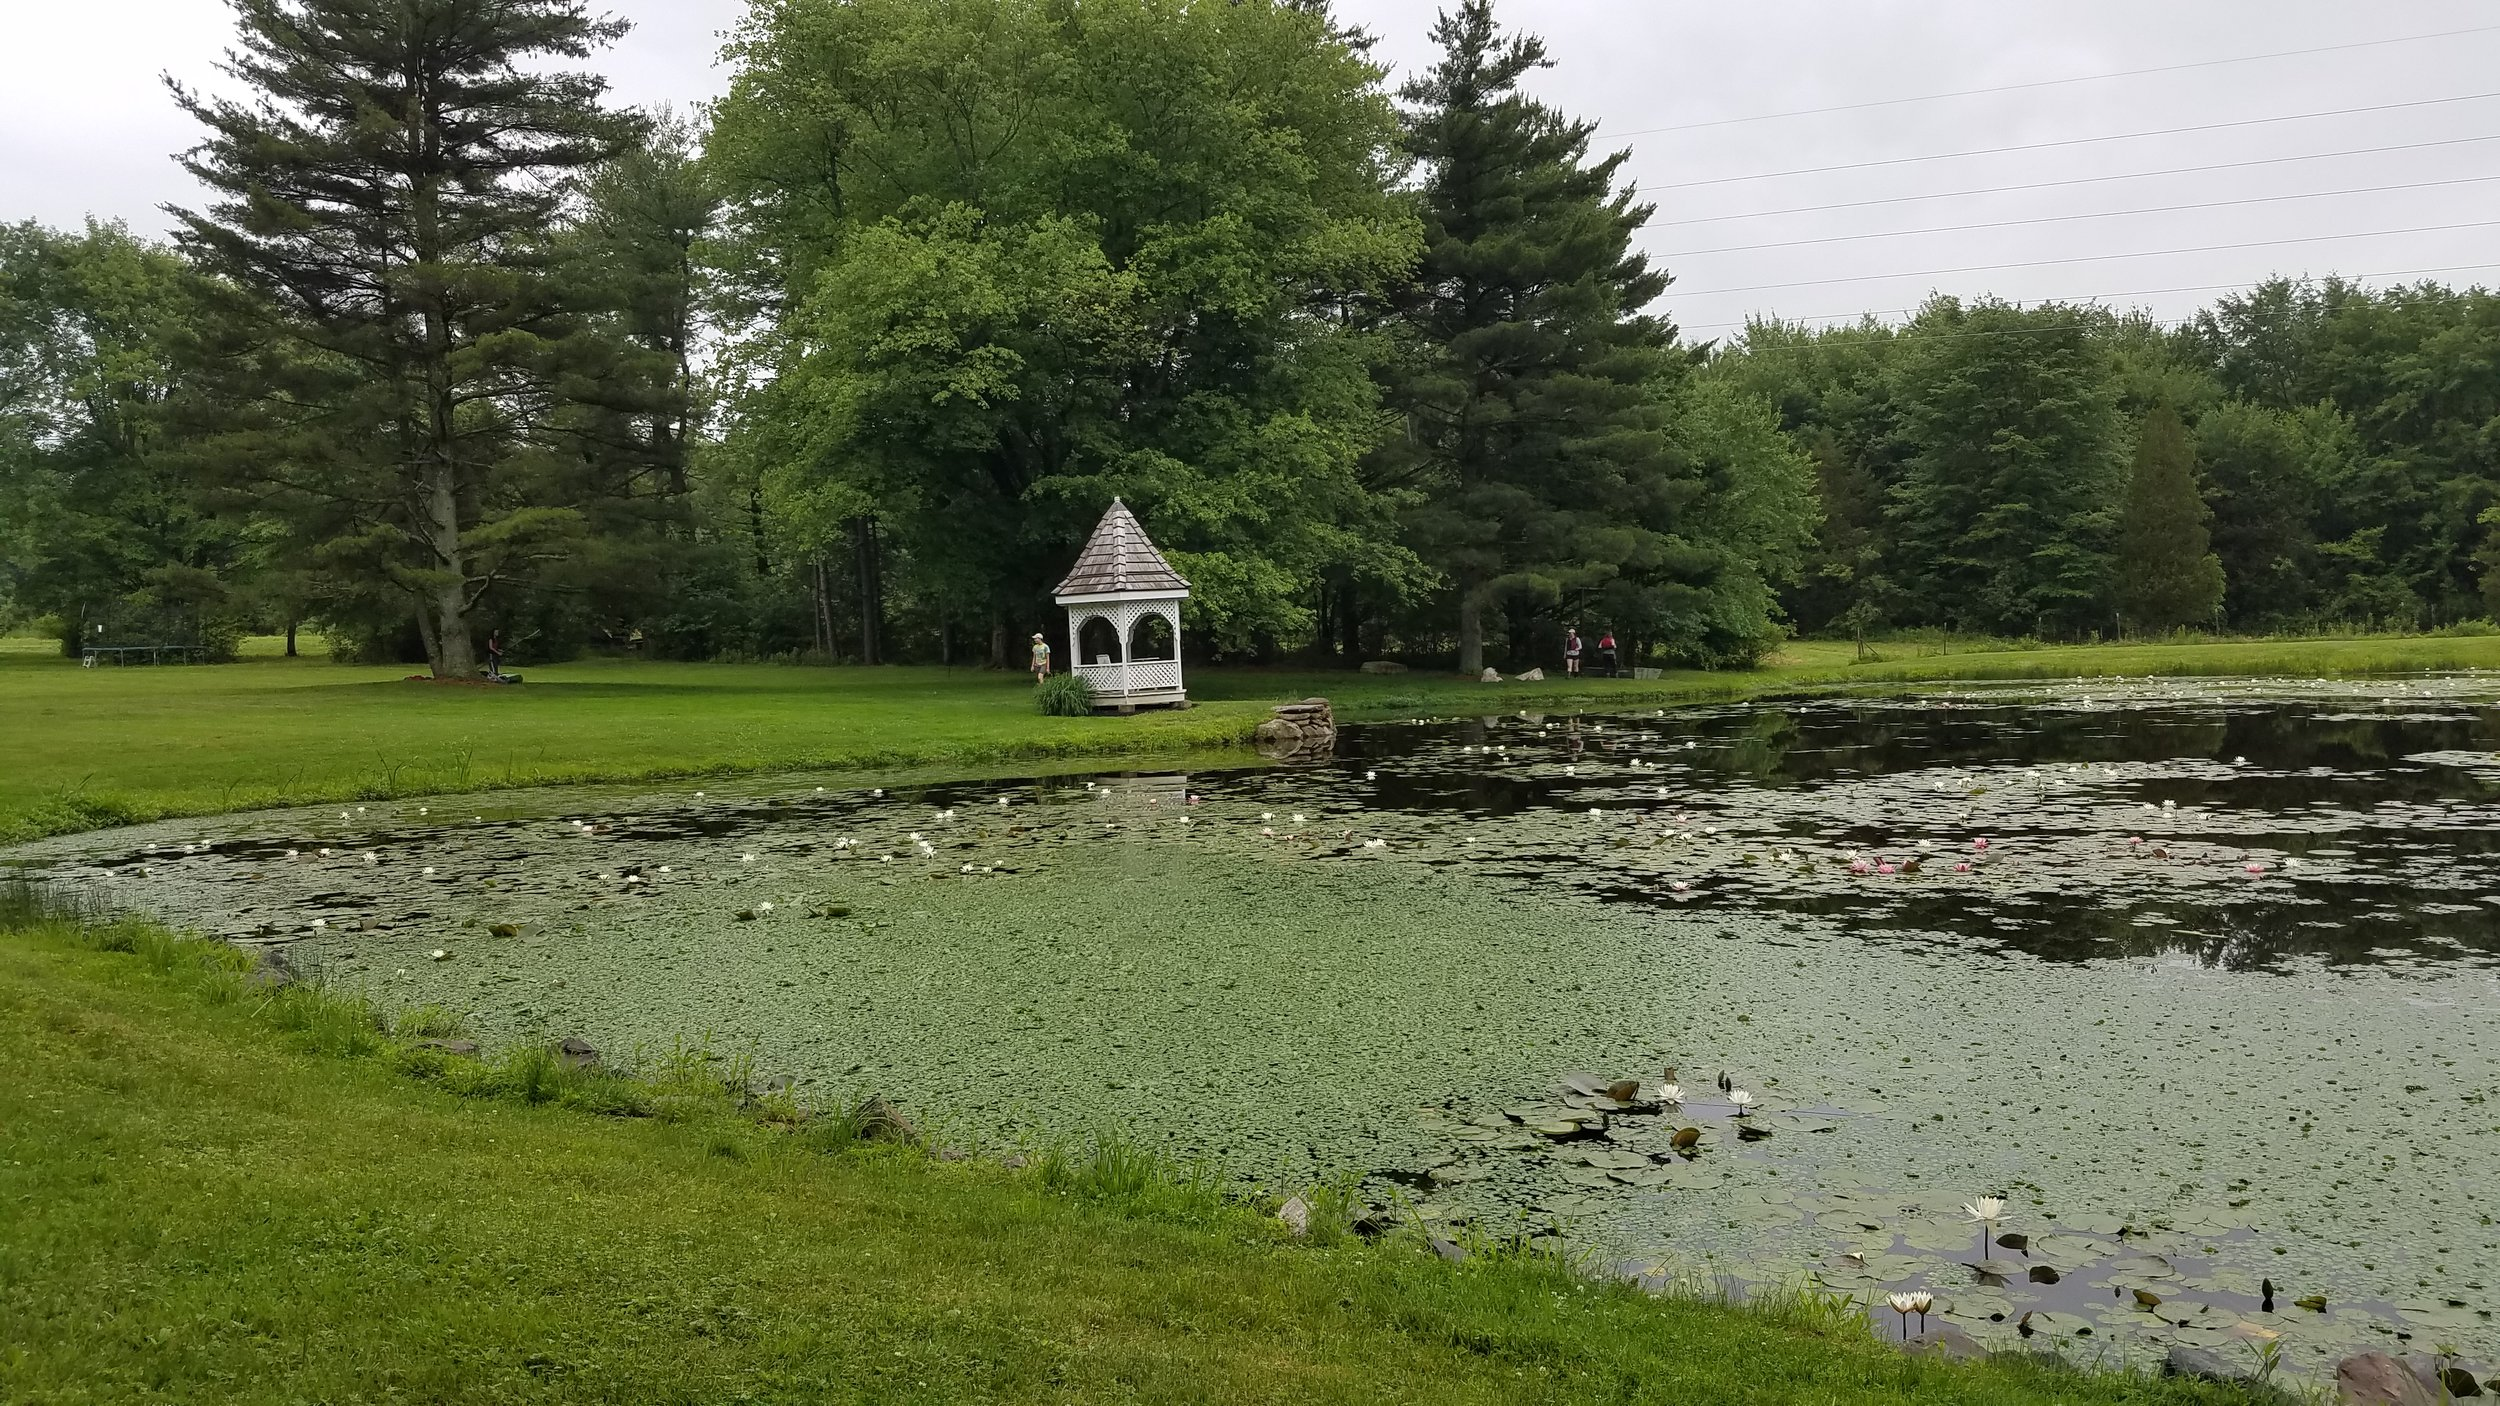 This image shows the infestation at Ruth Pond in June of 2019 after 3 full years of management.